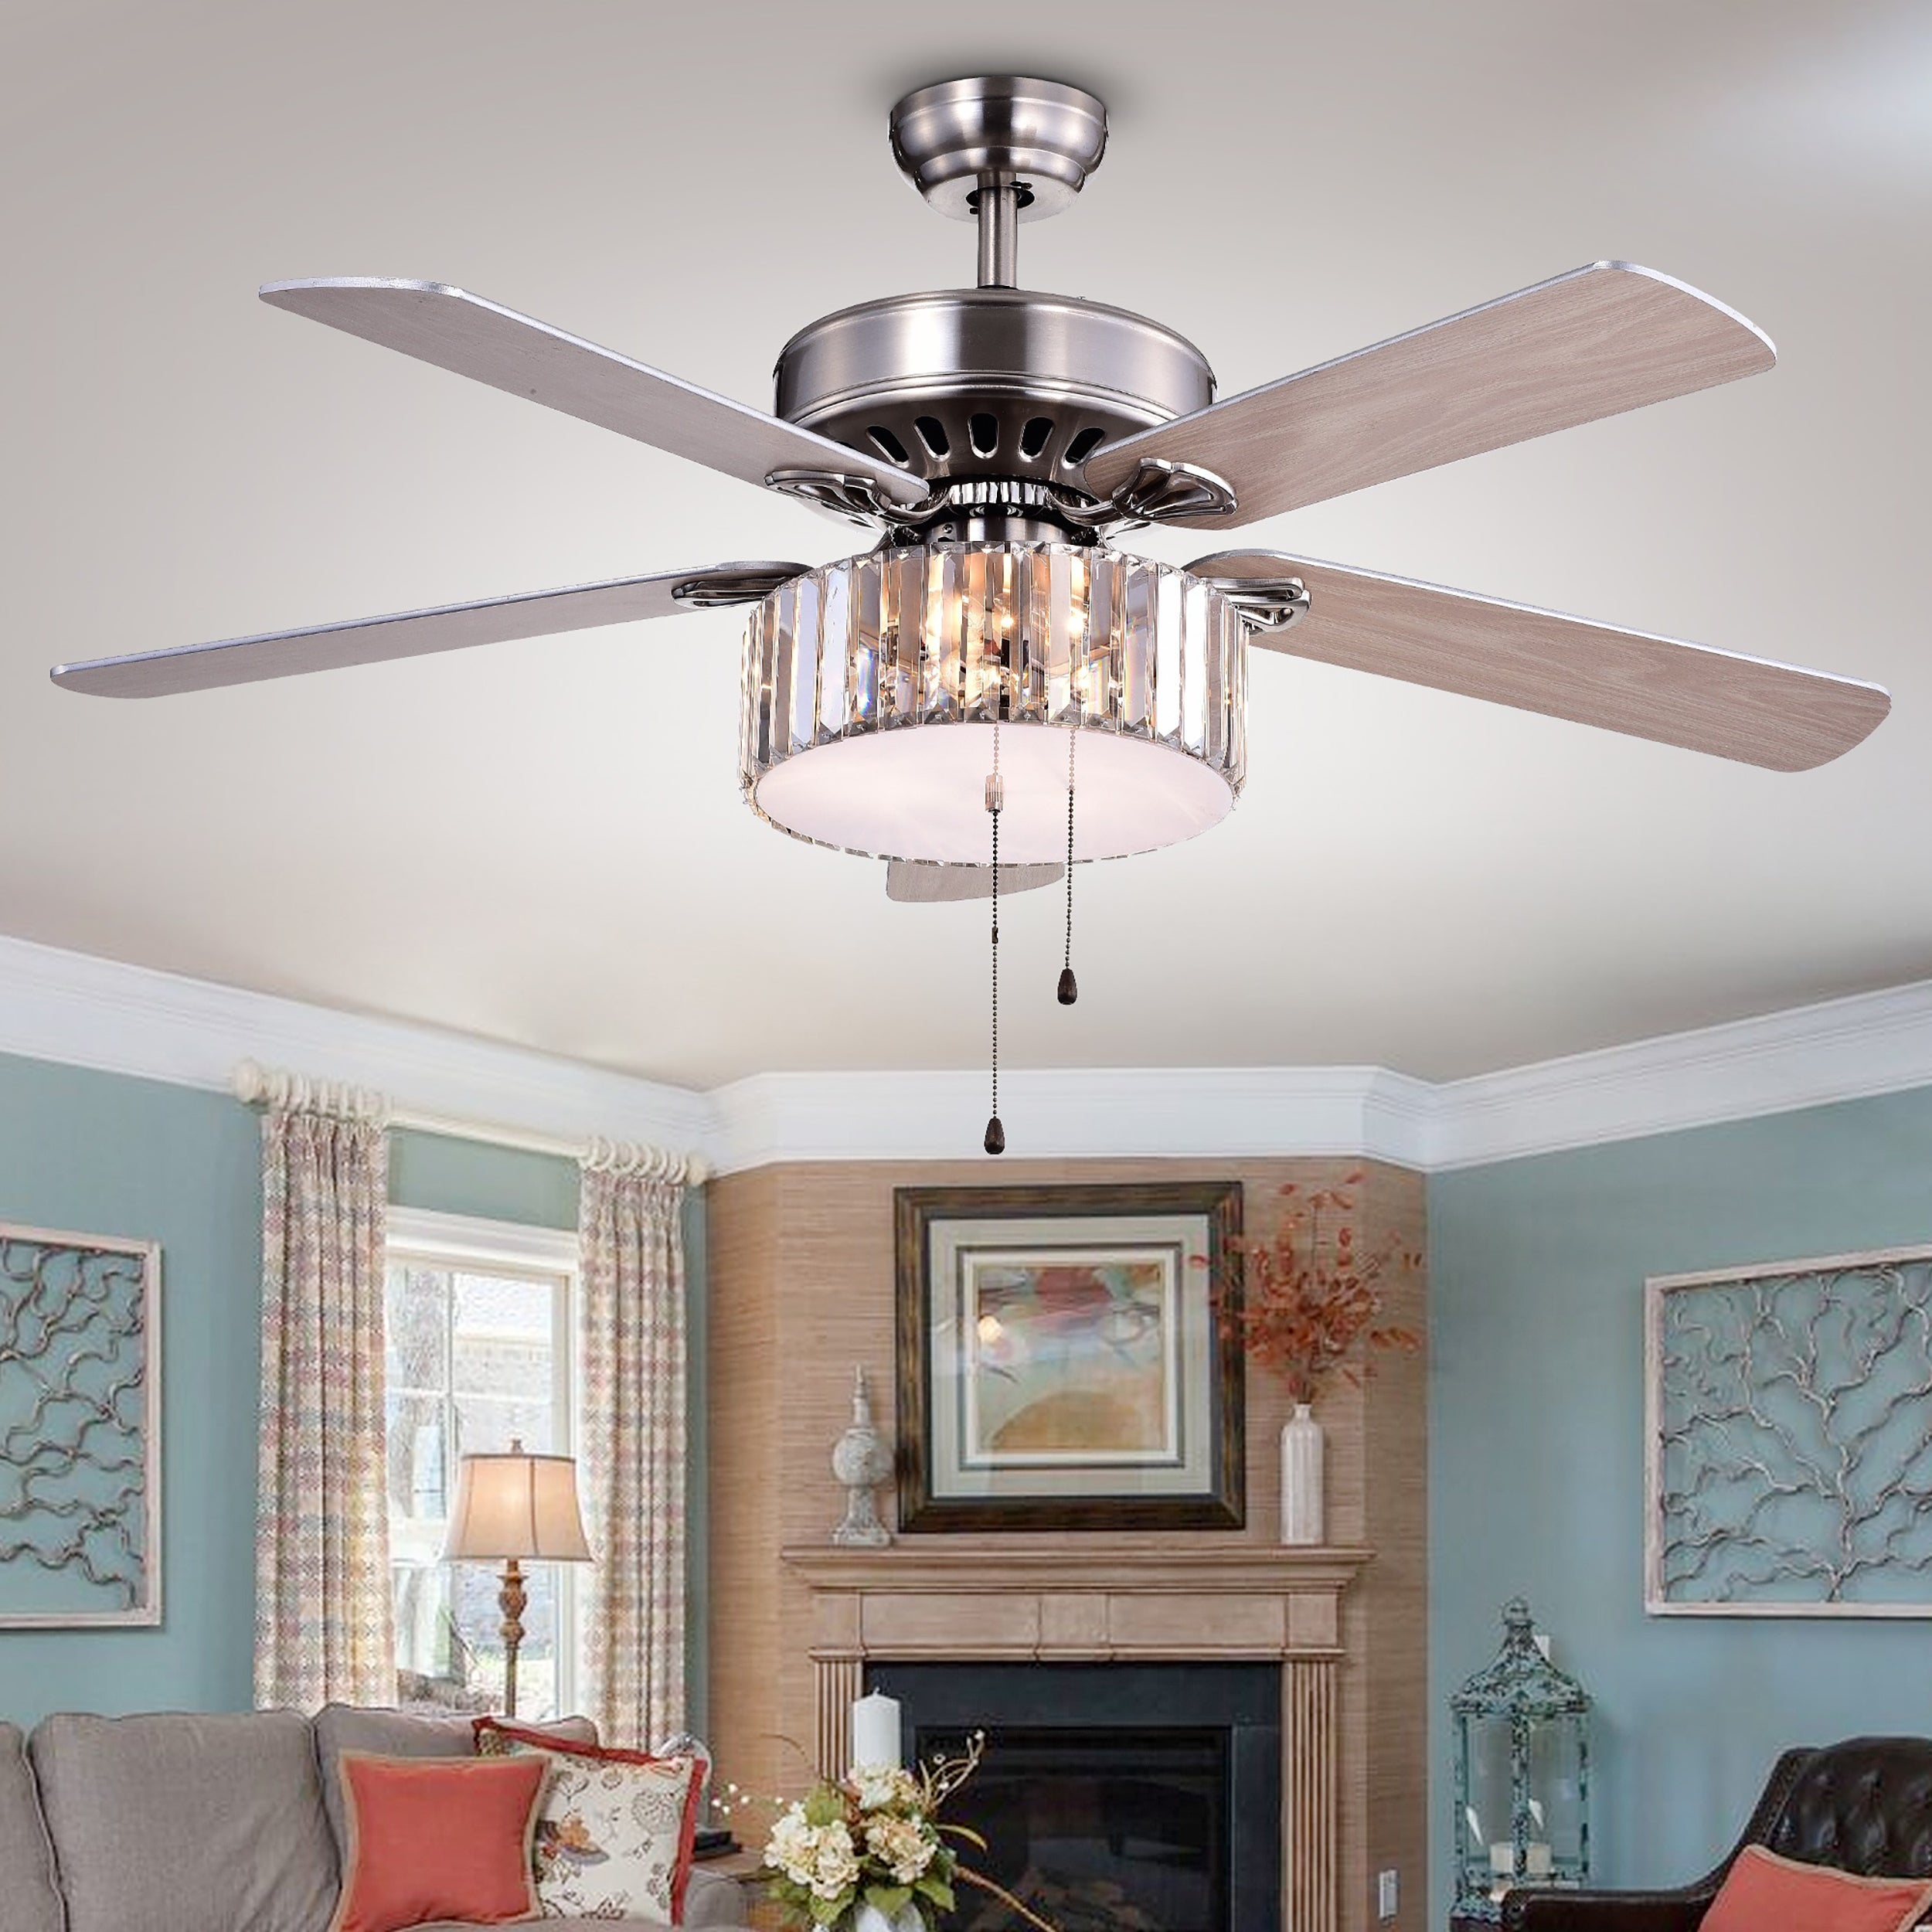 Kimalex 3 light 5 blade Wood Nickel Crystal 52 inch Ceiling Fan